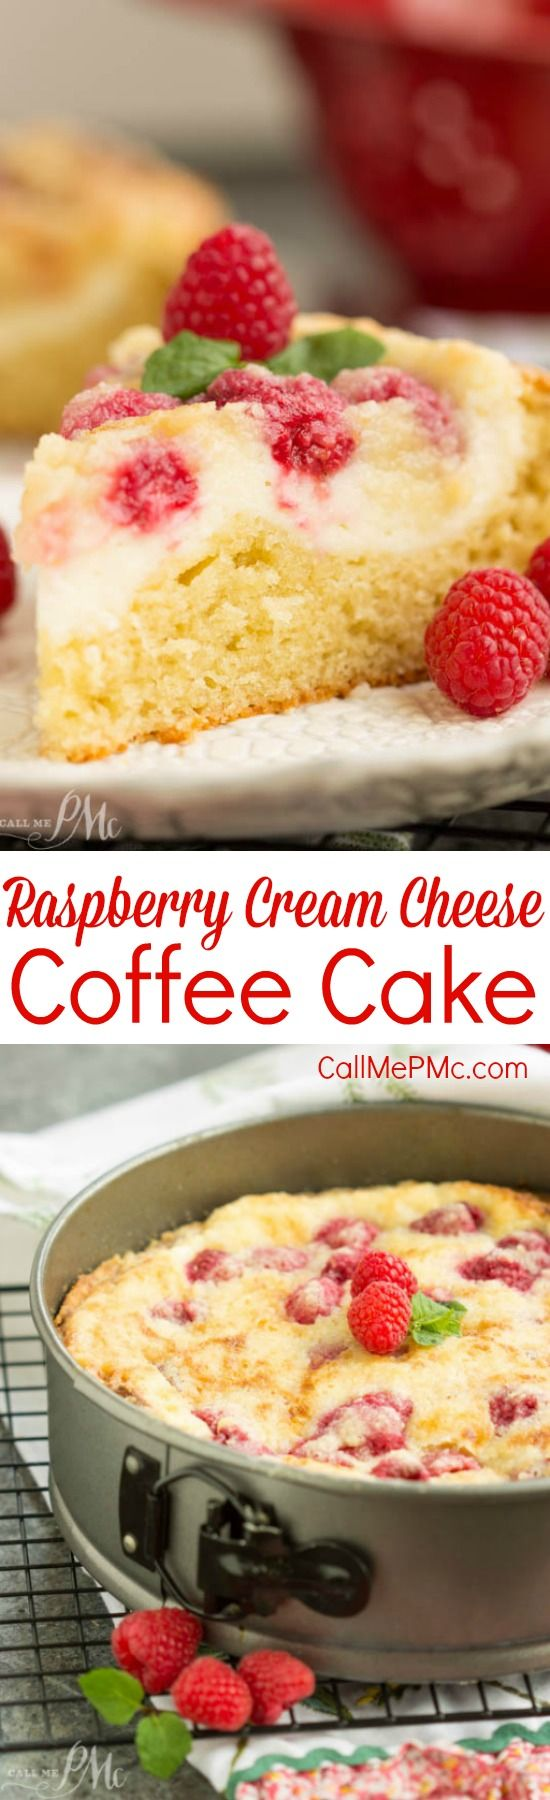 Raspberry Streusel Cream Cheese Coffee Cake is moist and tender with a ribbon of cream cheese and fresh raspberries running through it (baked cheese bites raspberry cheesecake)